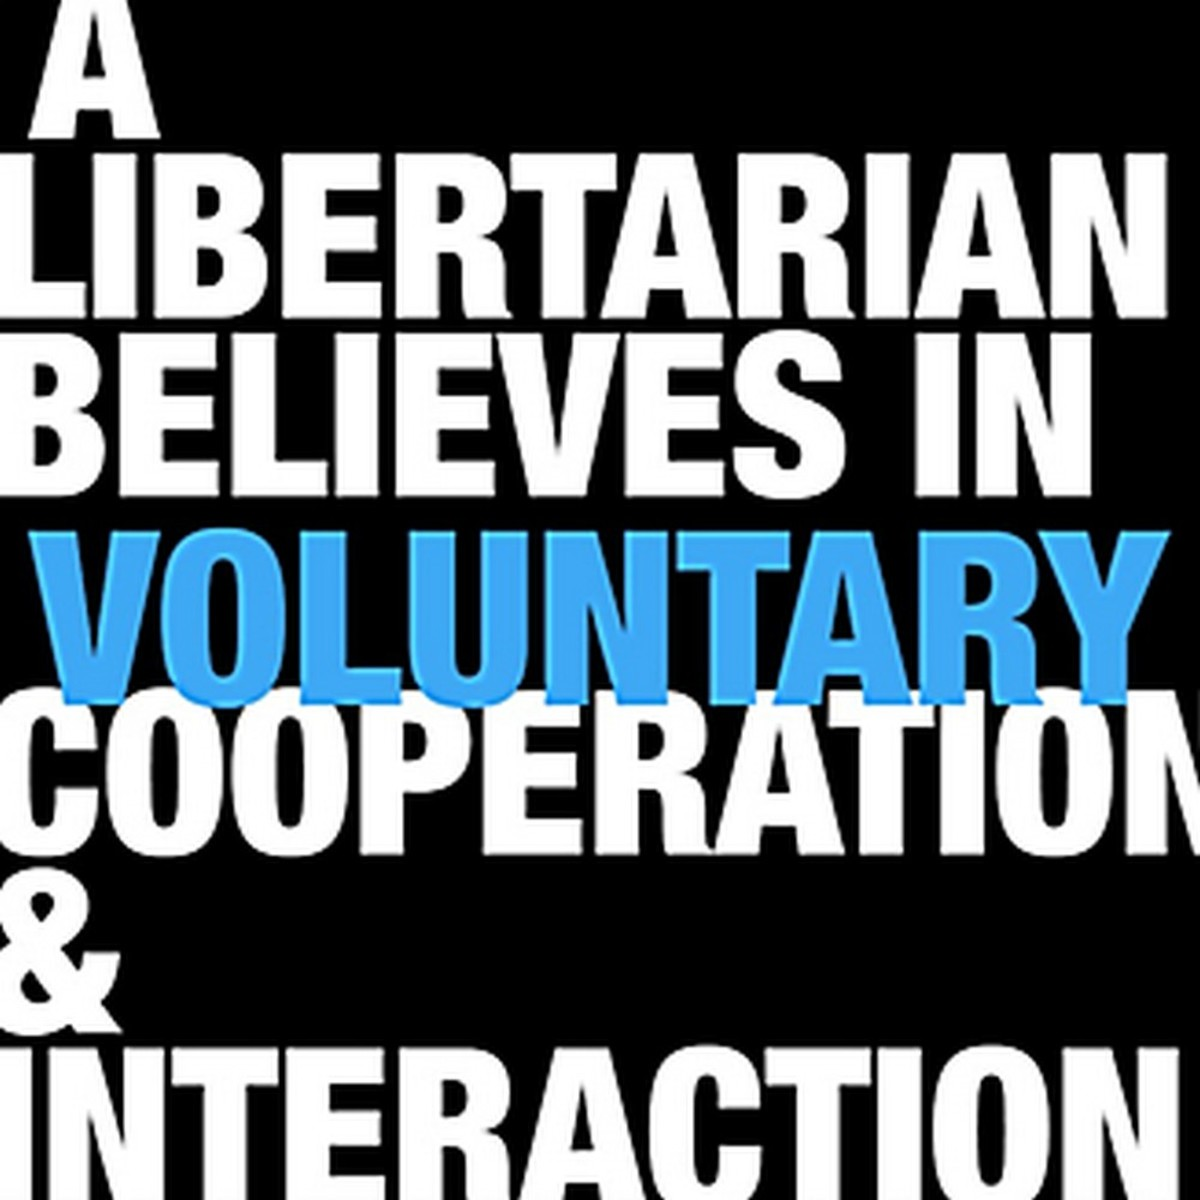 Libertarian collectivists are welcome as long as they voluntarily live by the non-aggression principle and never impose their collectivism on others.